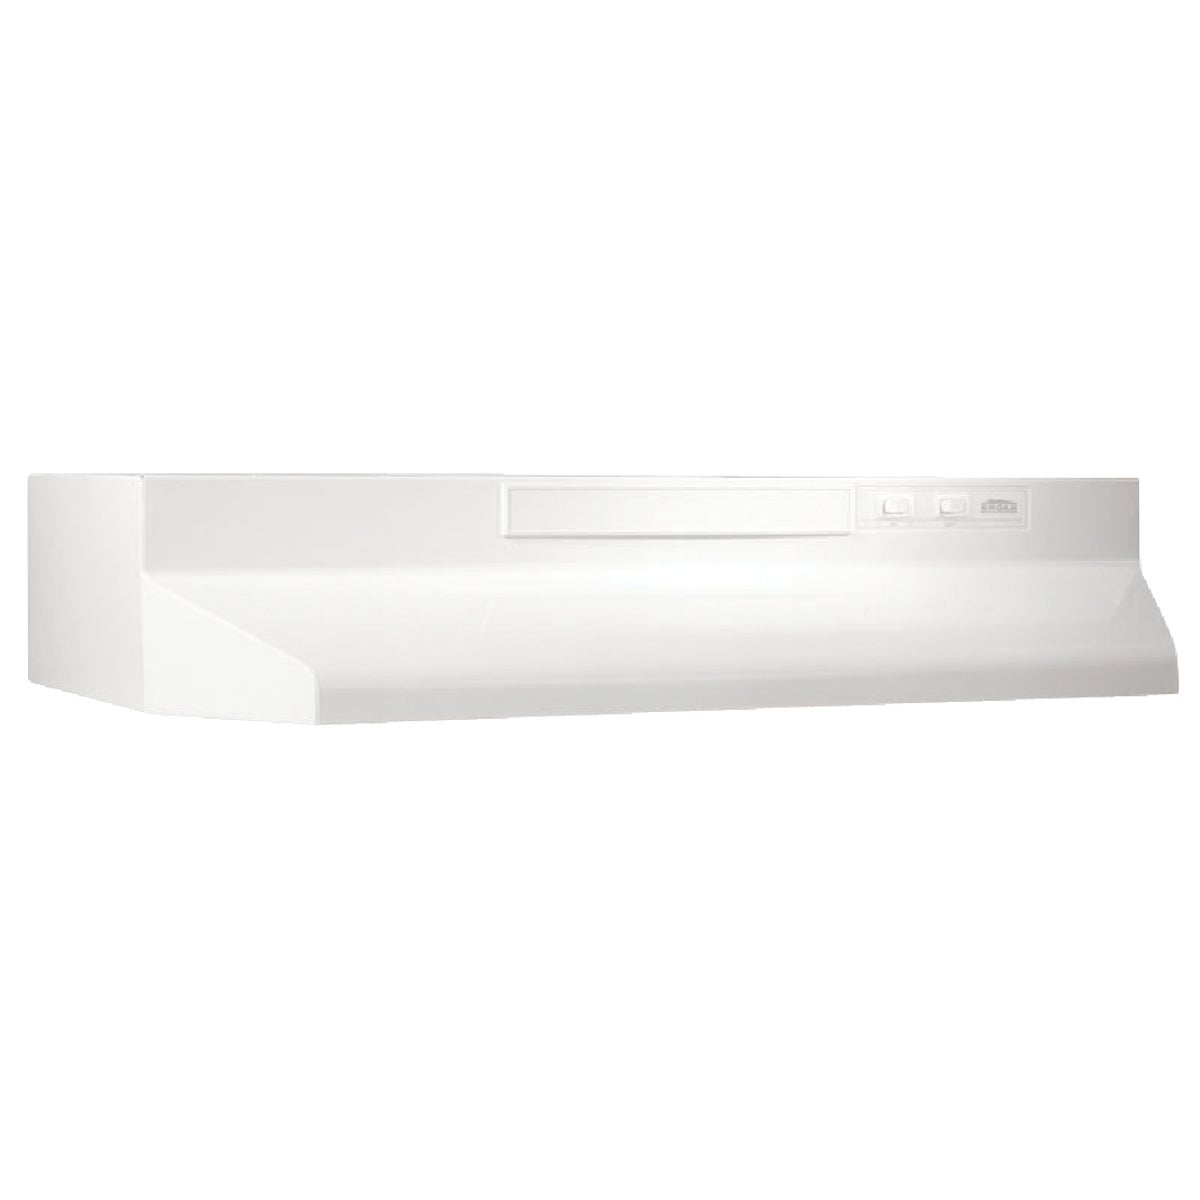 "36"" WHITE CONV RANGEHOOD - F403601 by Broan Nutone"